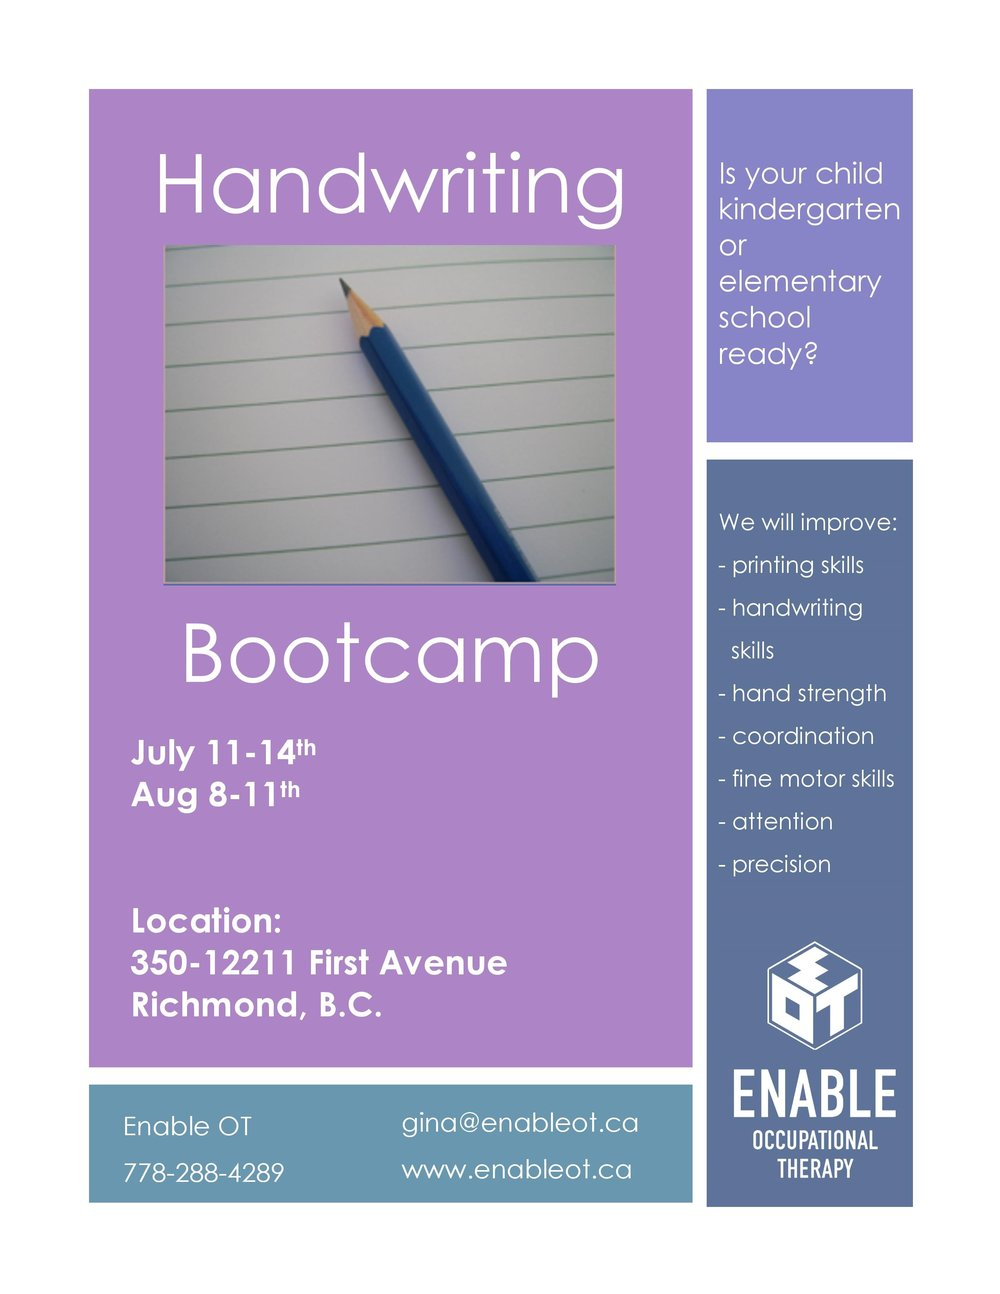 handwriting bootcamp flyer 2017